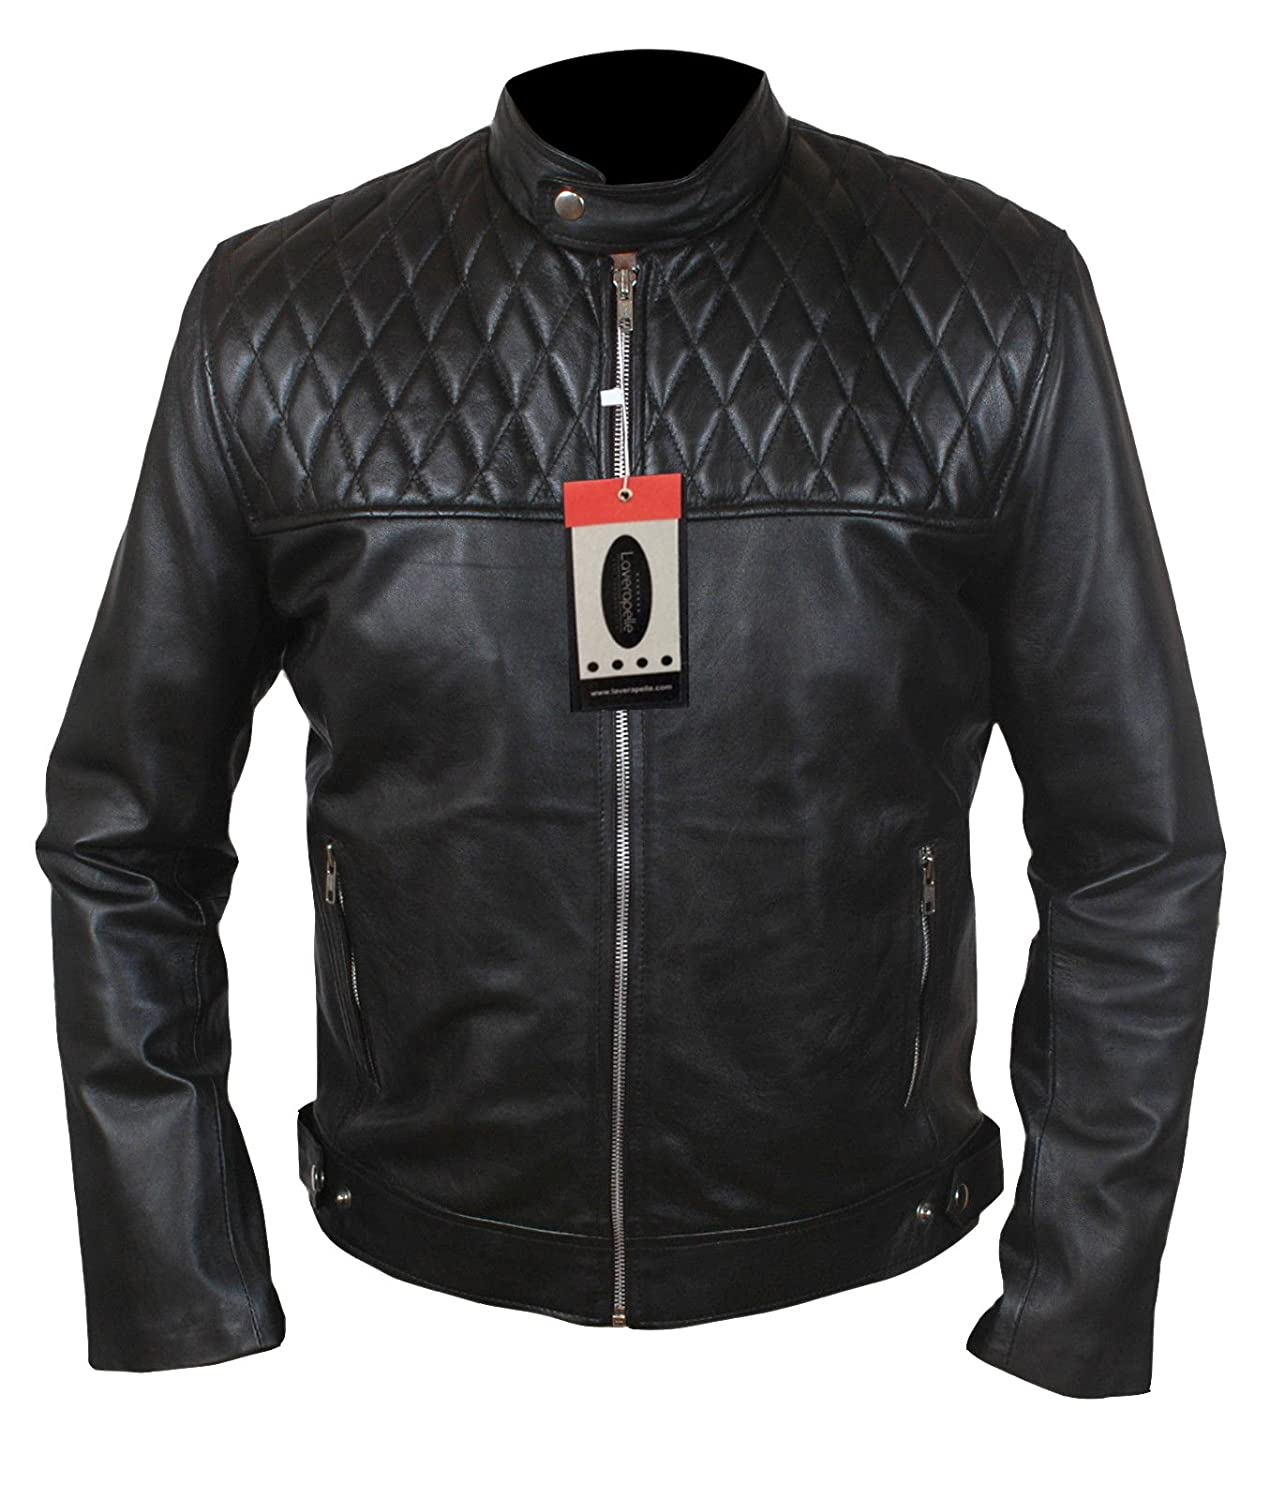 Laverapelle Men's Quilted Top Genuine Real Sheep Leather Fashion Jacket - 1510788